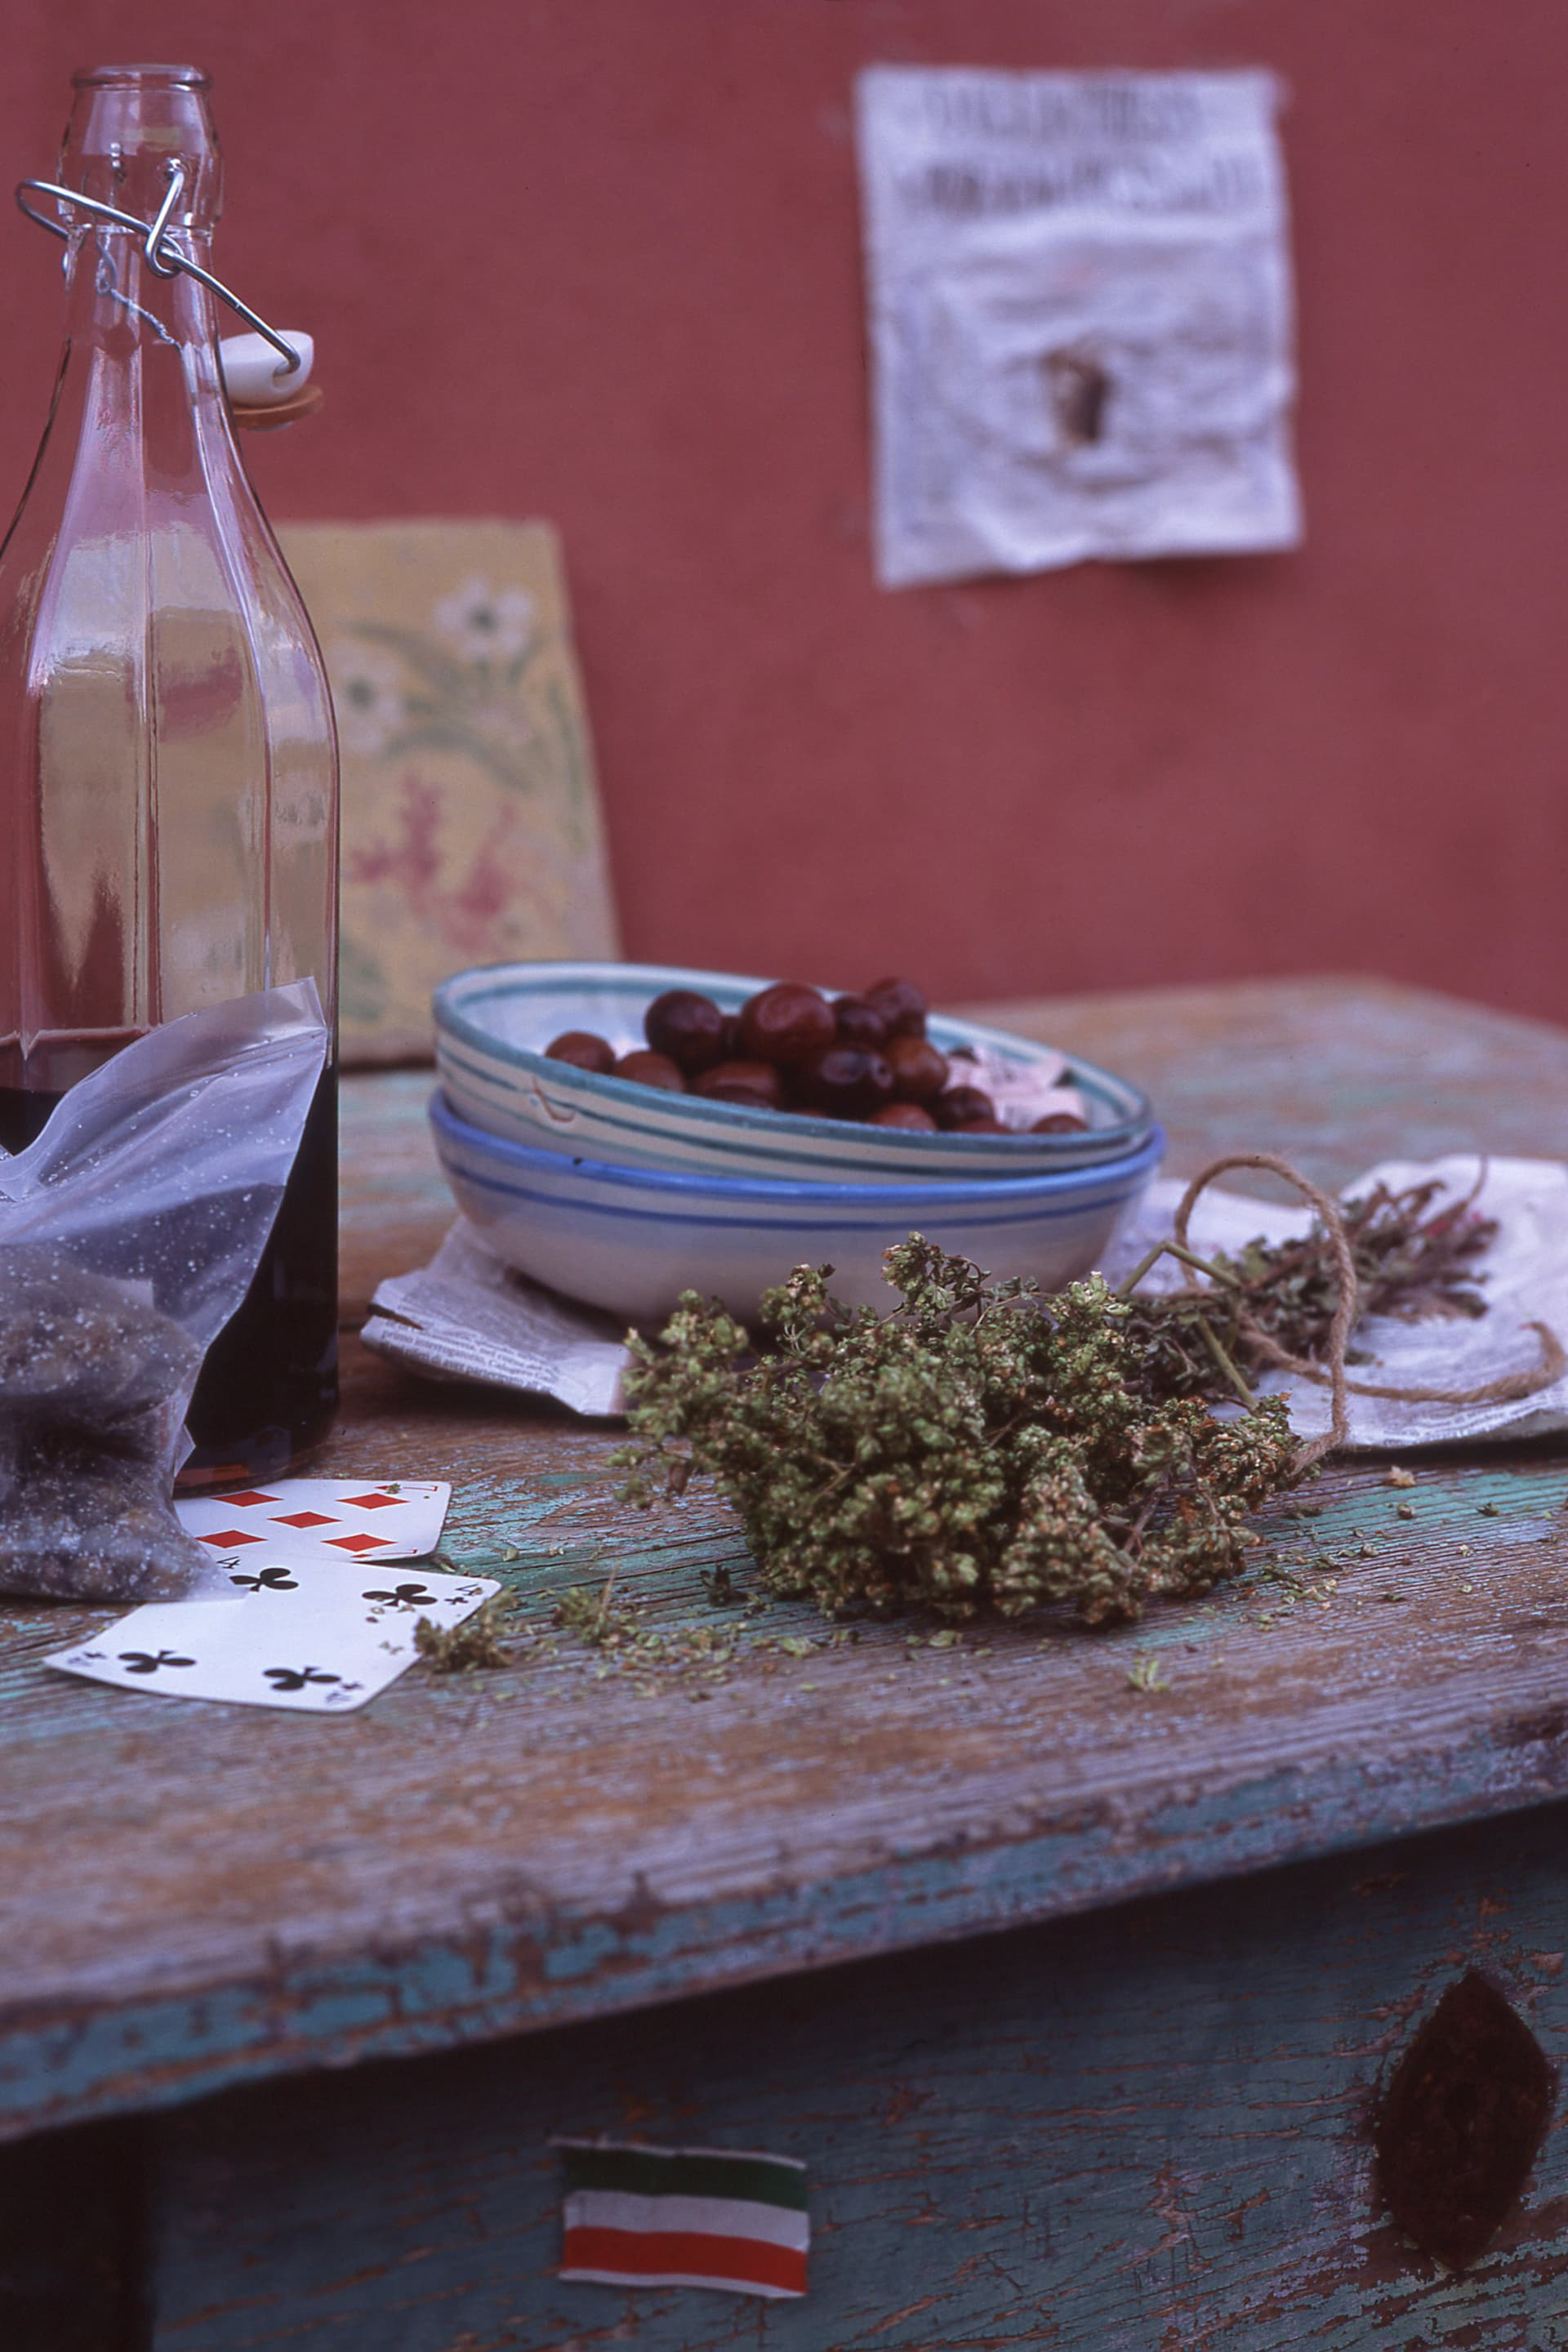 On the table, local specialties such as salted capers, oregano and olives.